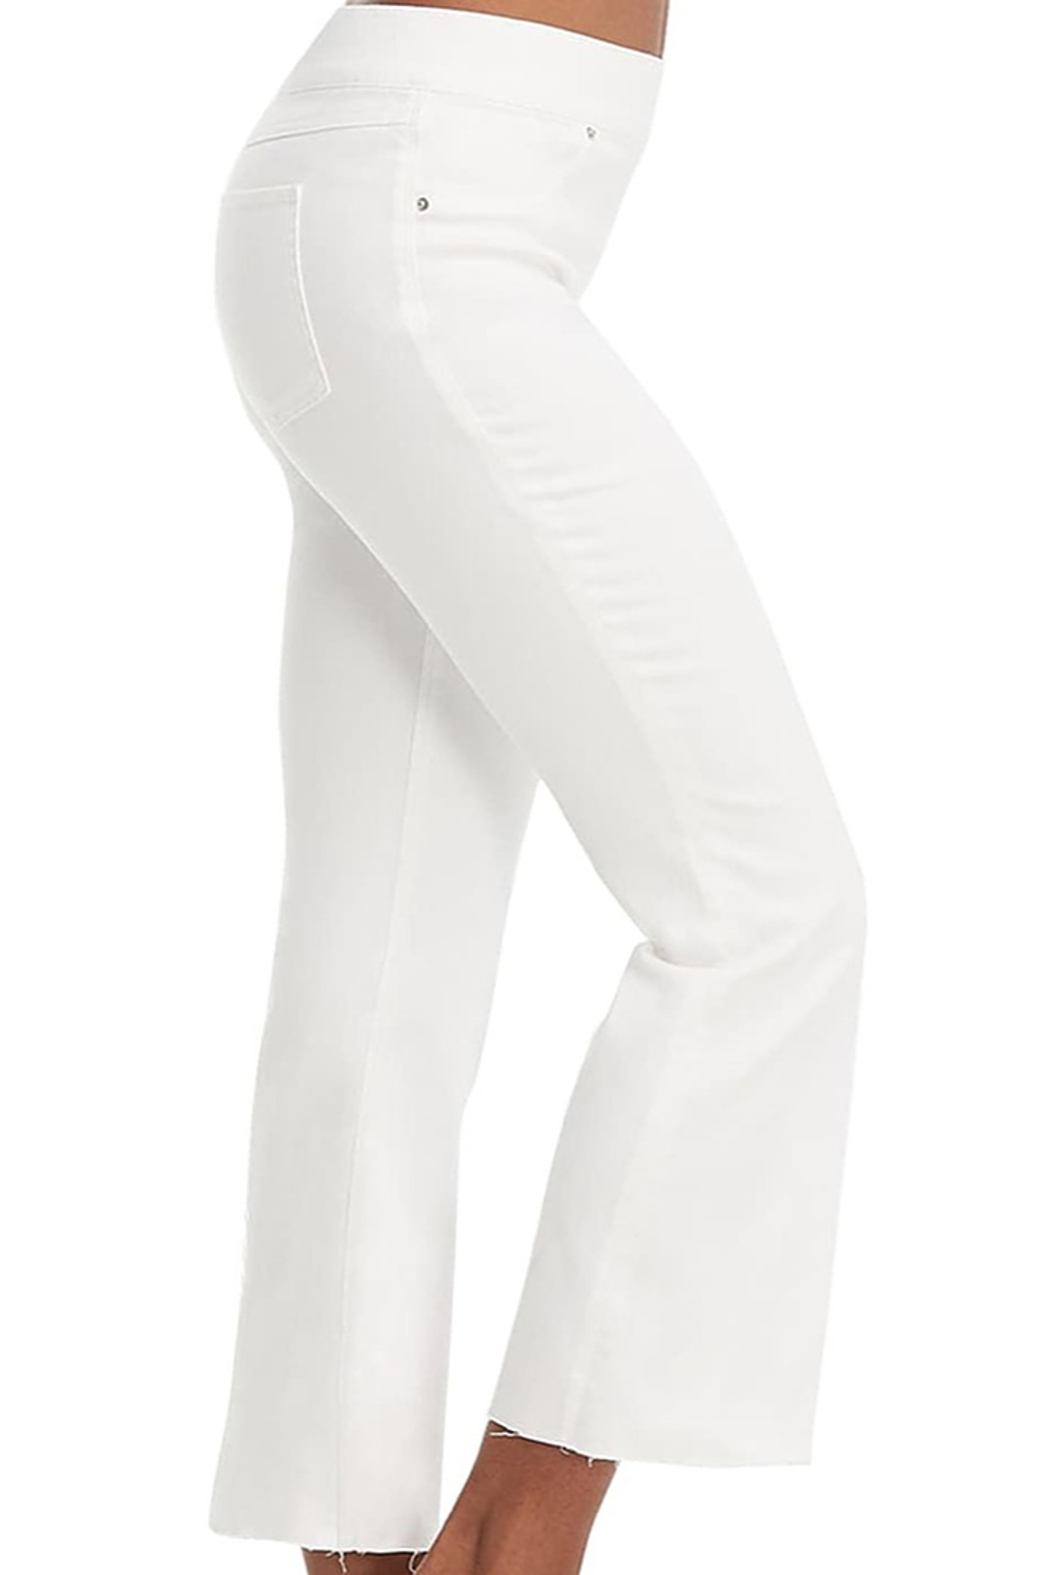 Spanx Cropped flare jean - Front Full Image